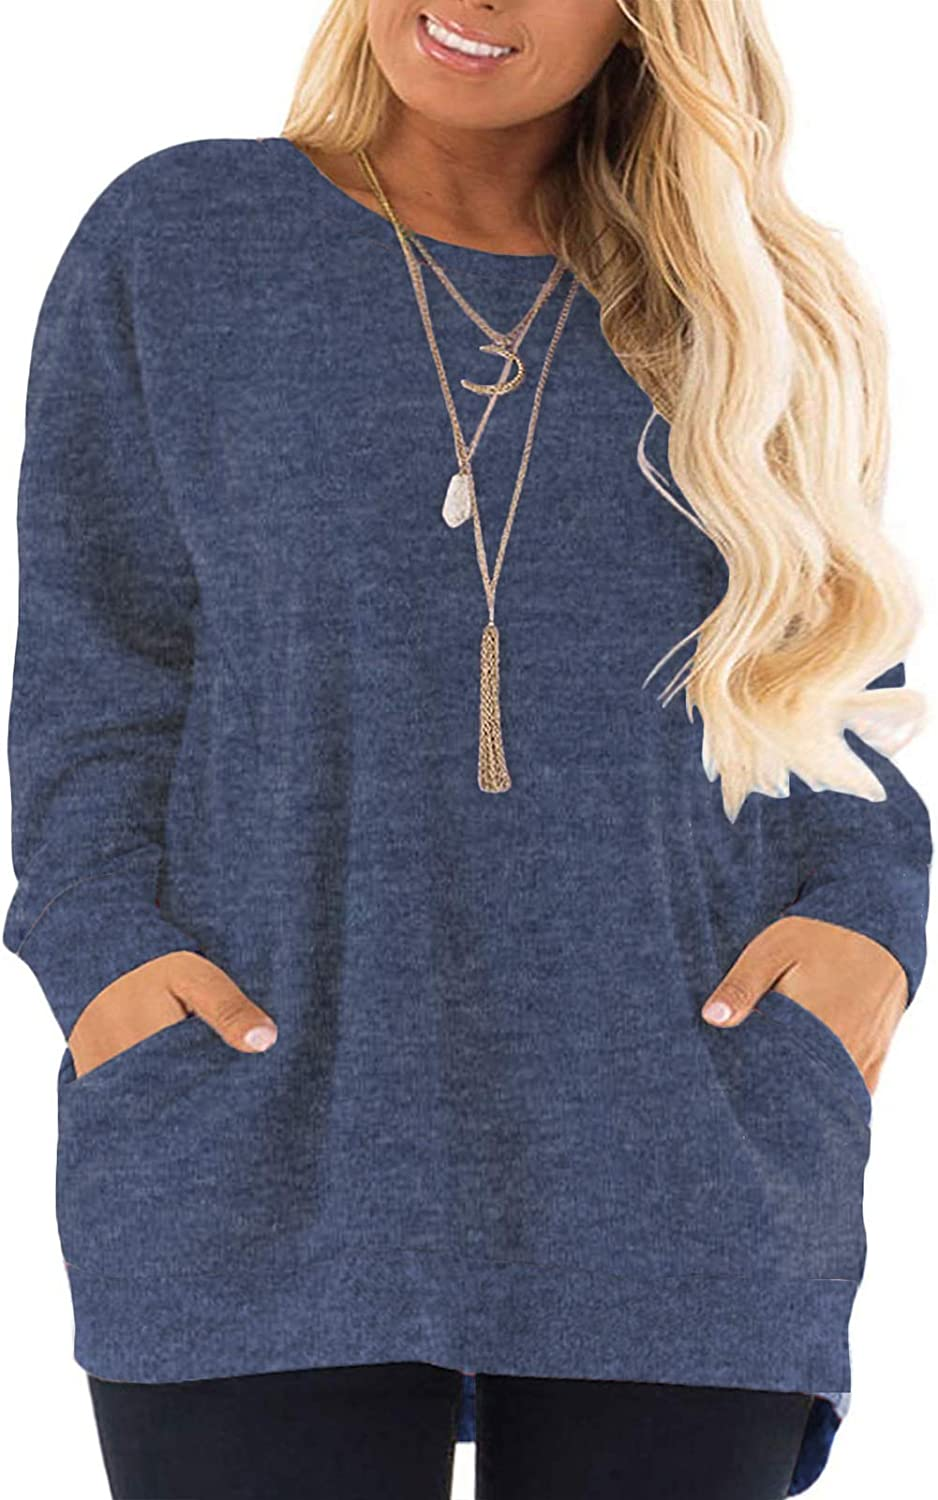 AURISSY Plus-Size Sweatshirts for Women Color Block Tops Shirts with Pocket